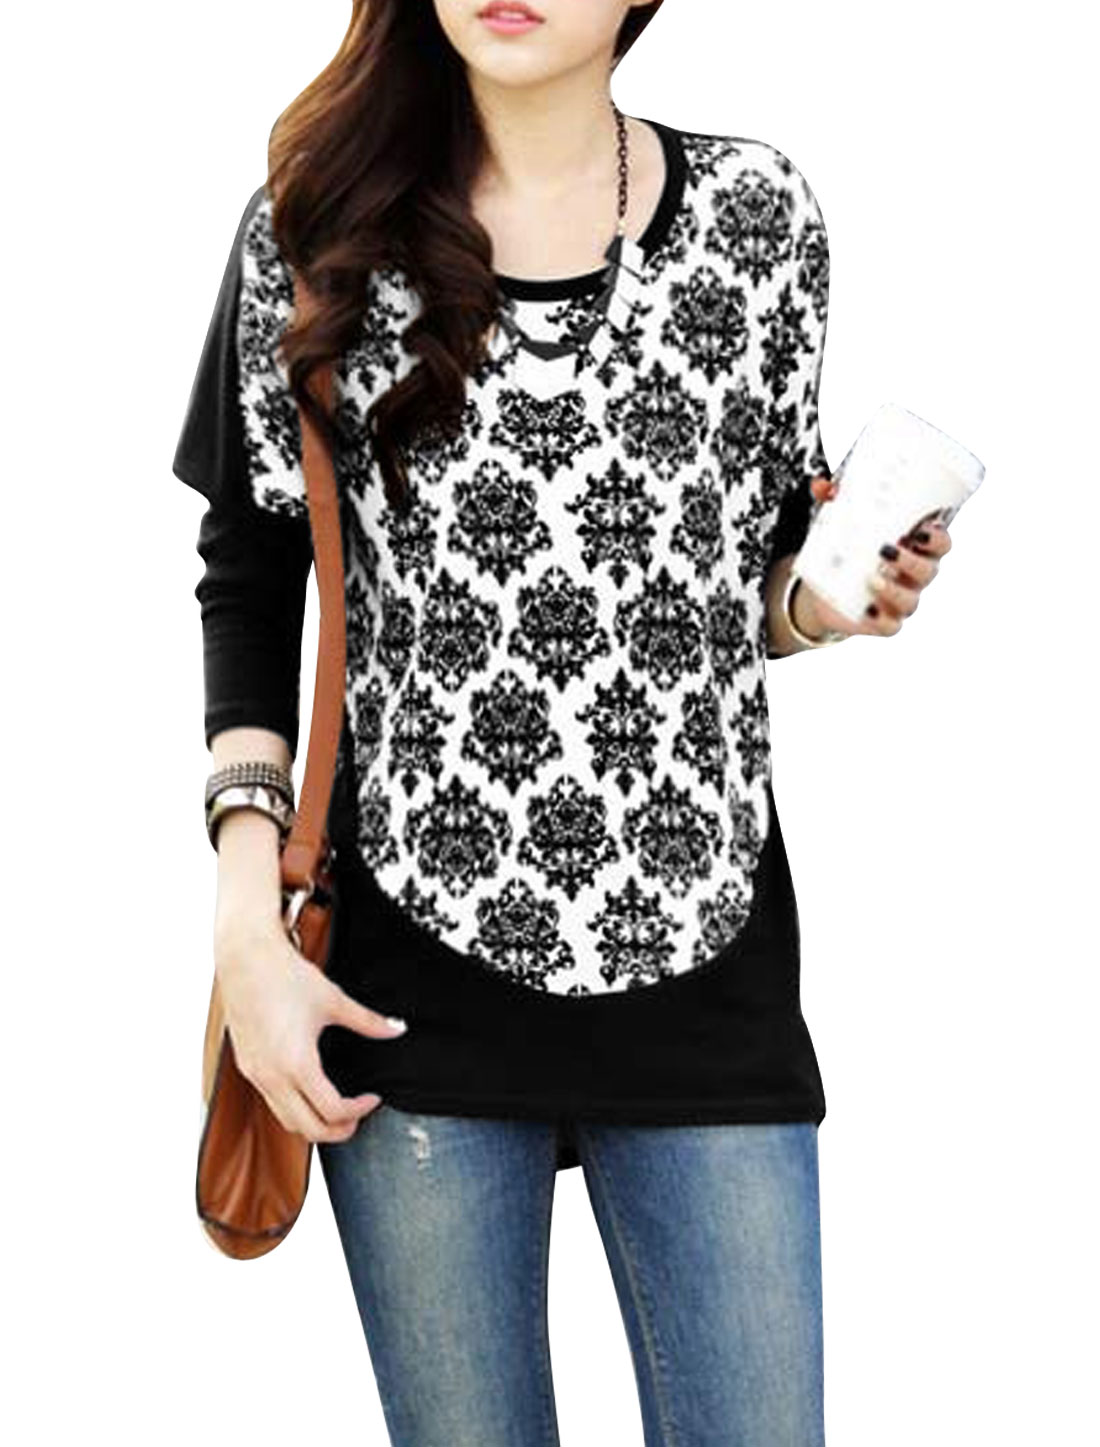 Ladies Black White Round Neck Bat sleeves Pullover Jacquard Pattern Tunic Top S